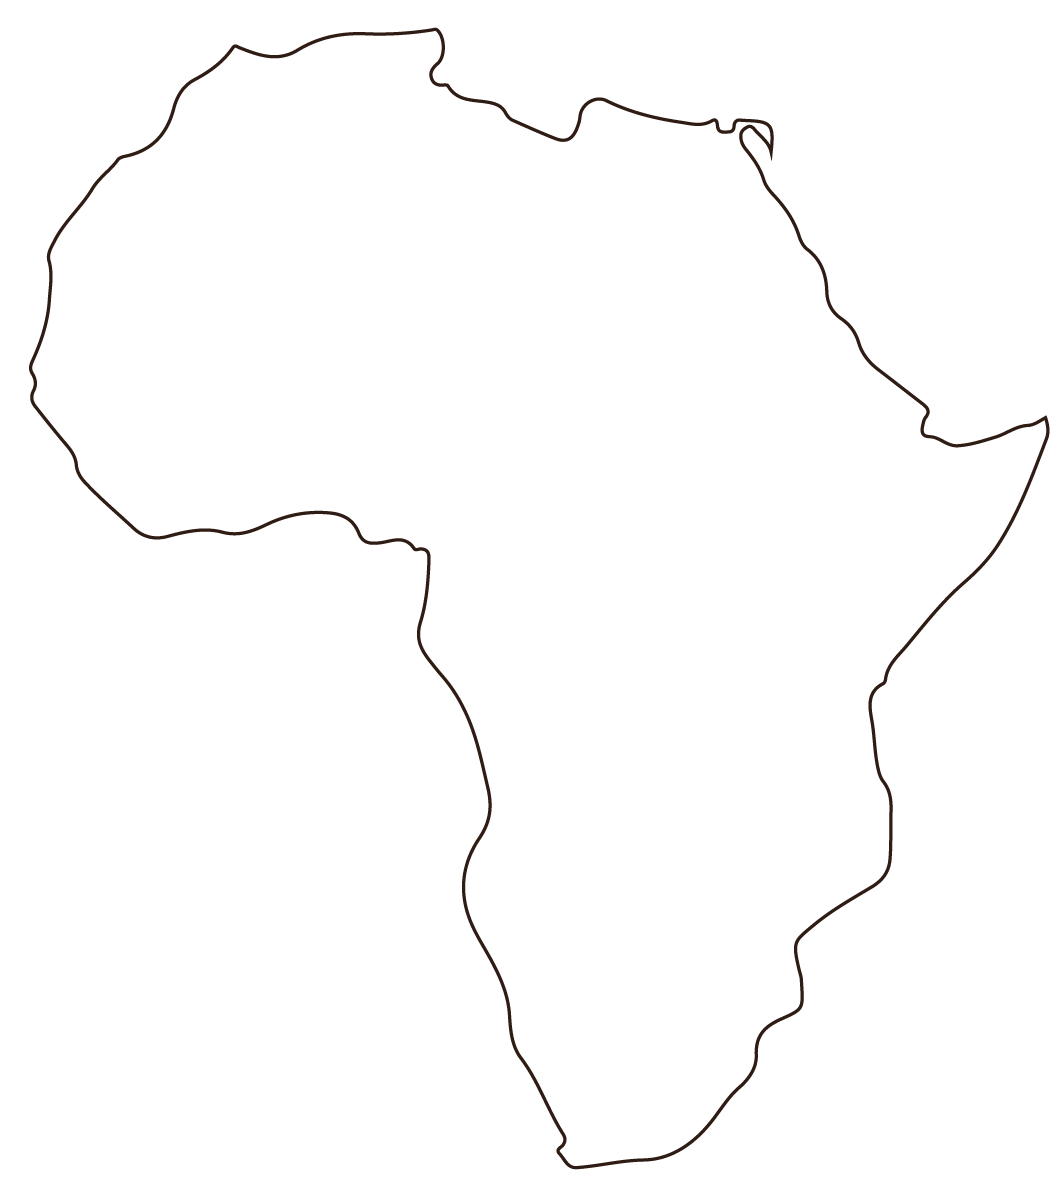 Africa outline png. Index of novattacq africaoutlinebro